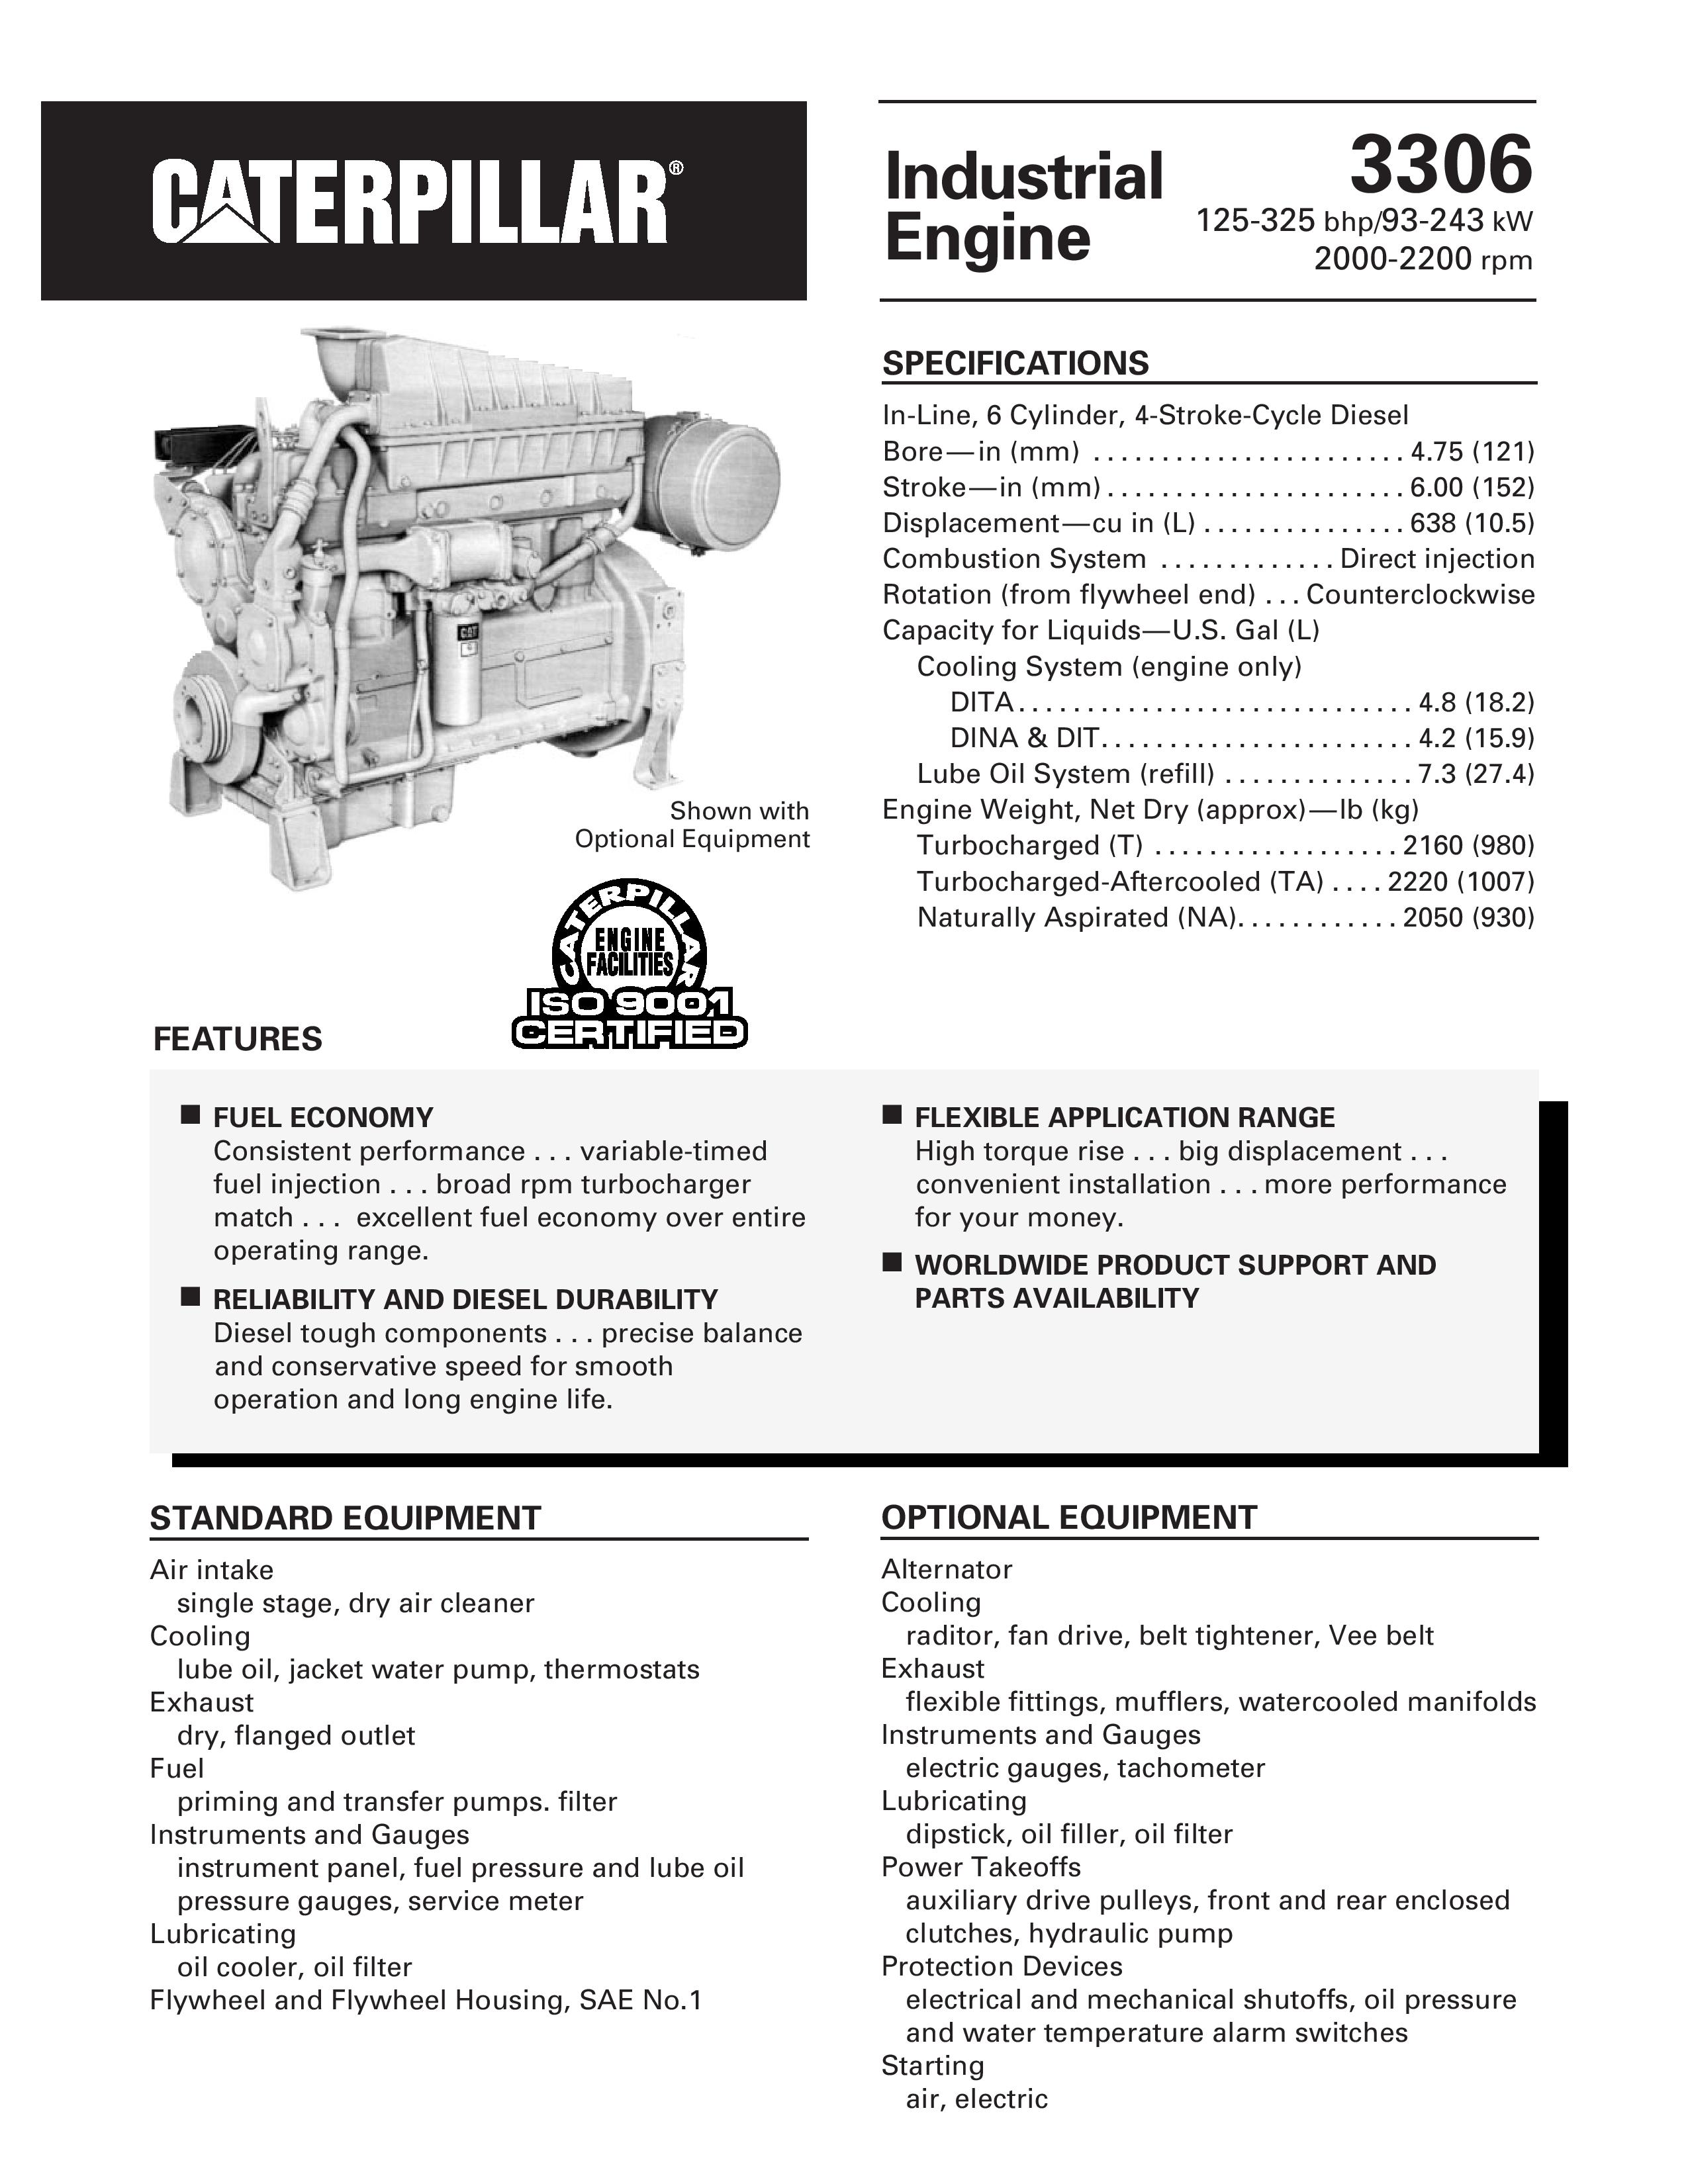 cat 3306 engine manual pdf